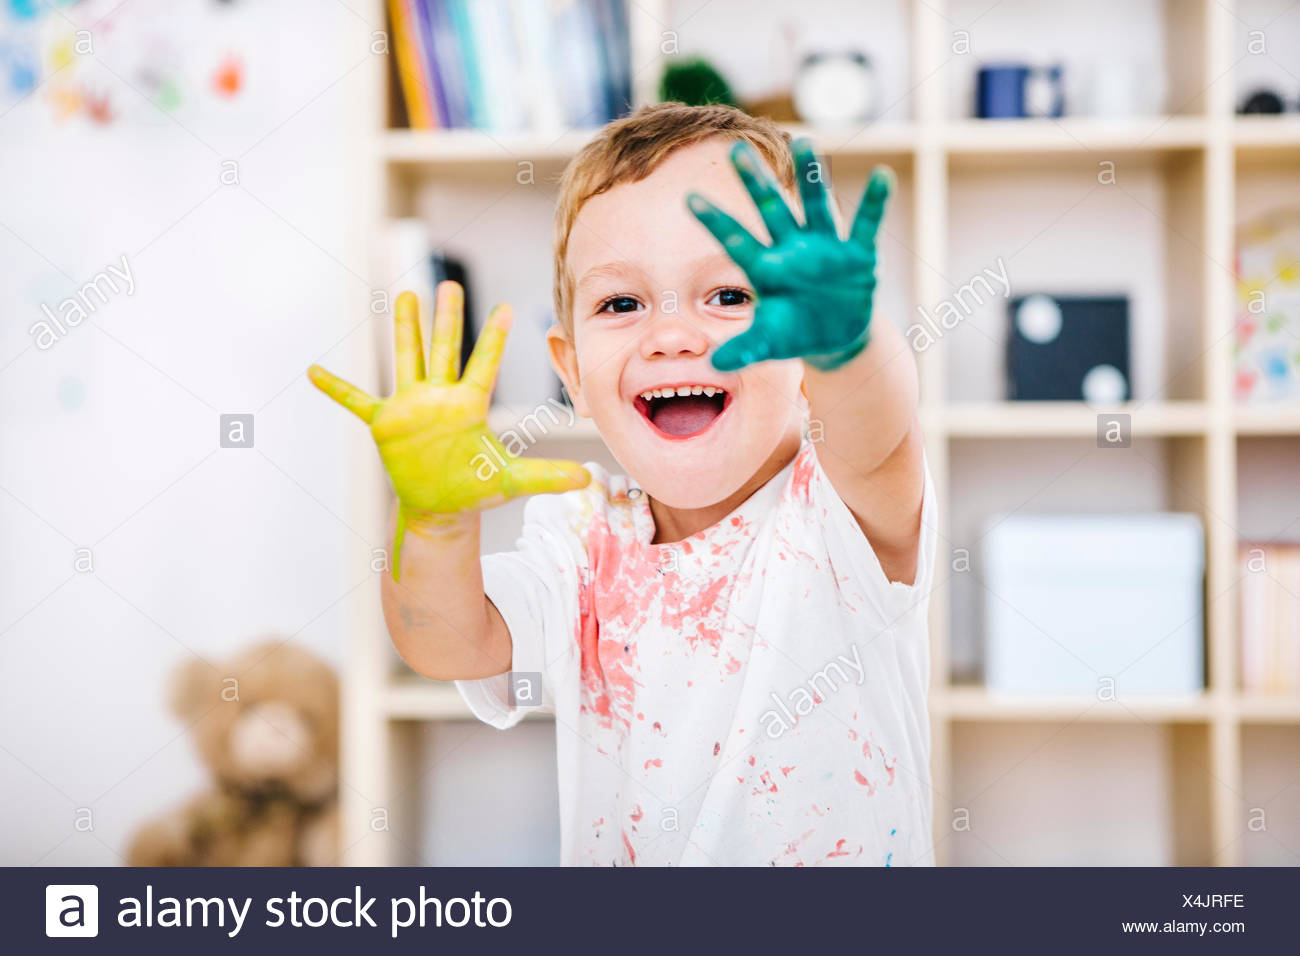 Portrait of smiling little boy showing his painted hands - Stock Image